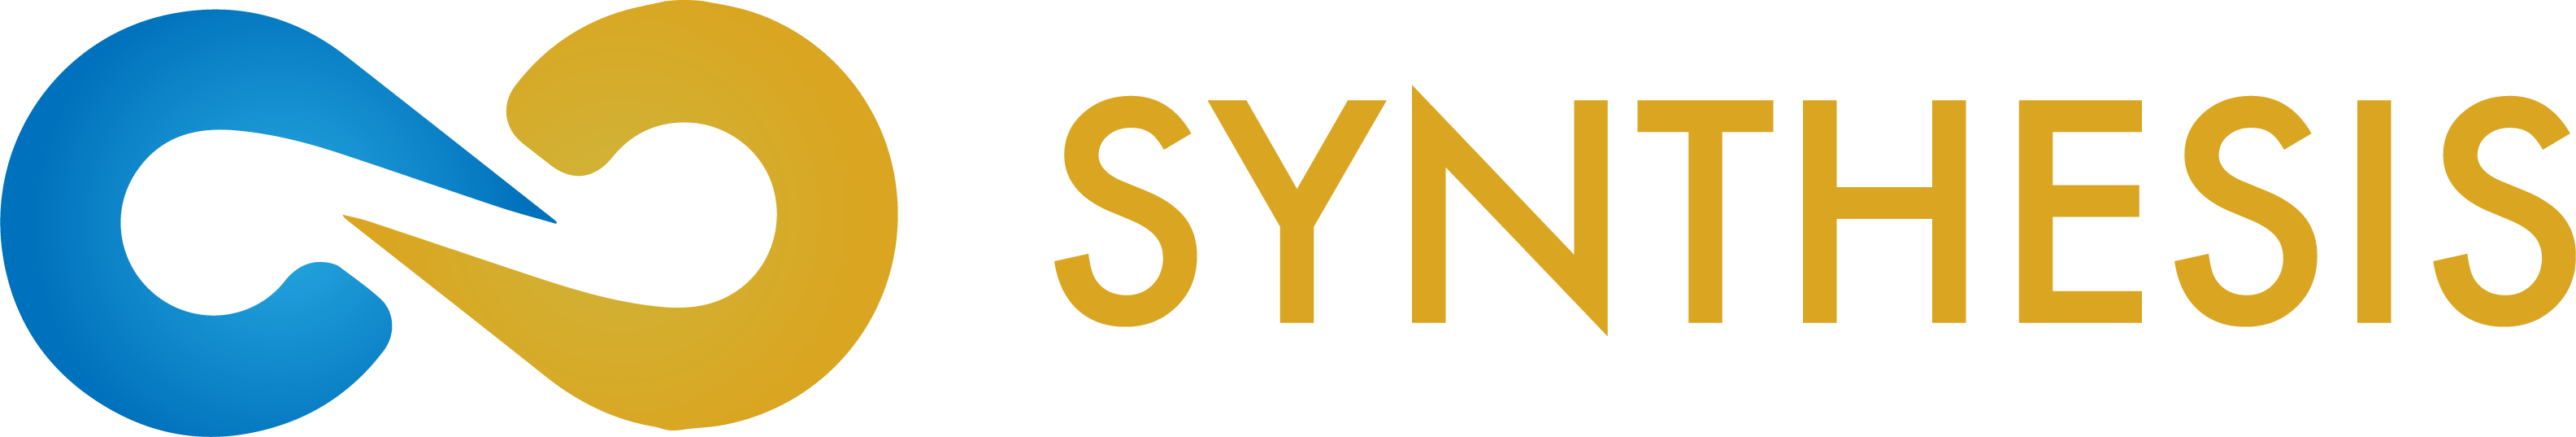 Synthesis Group